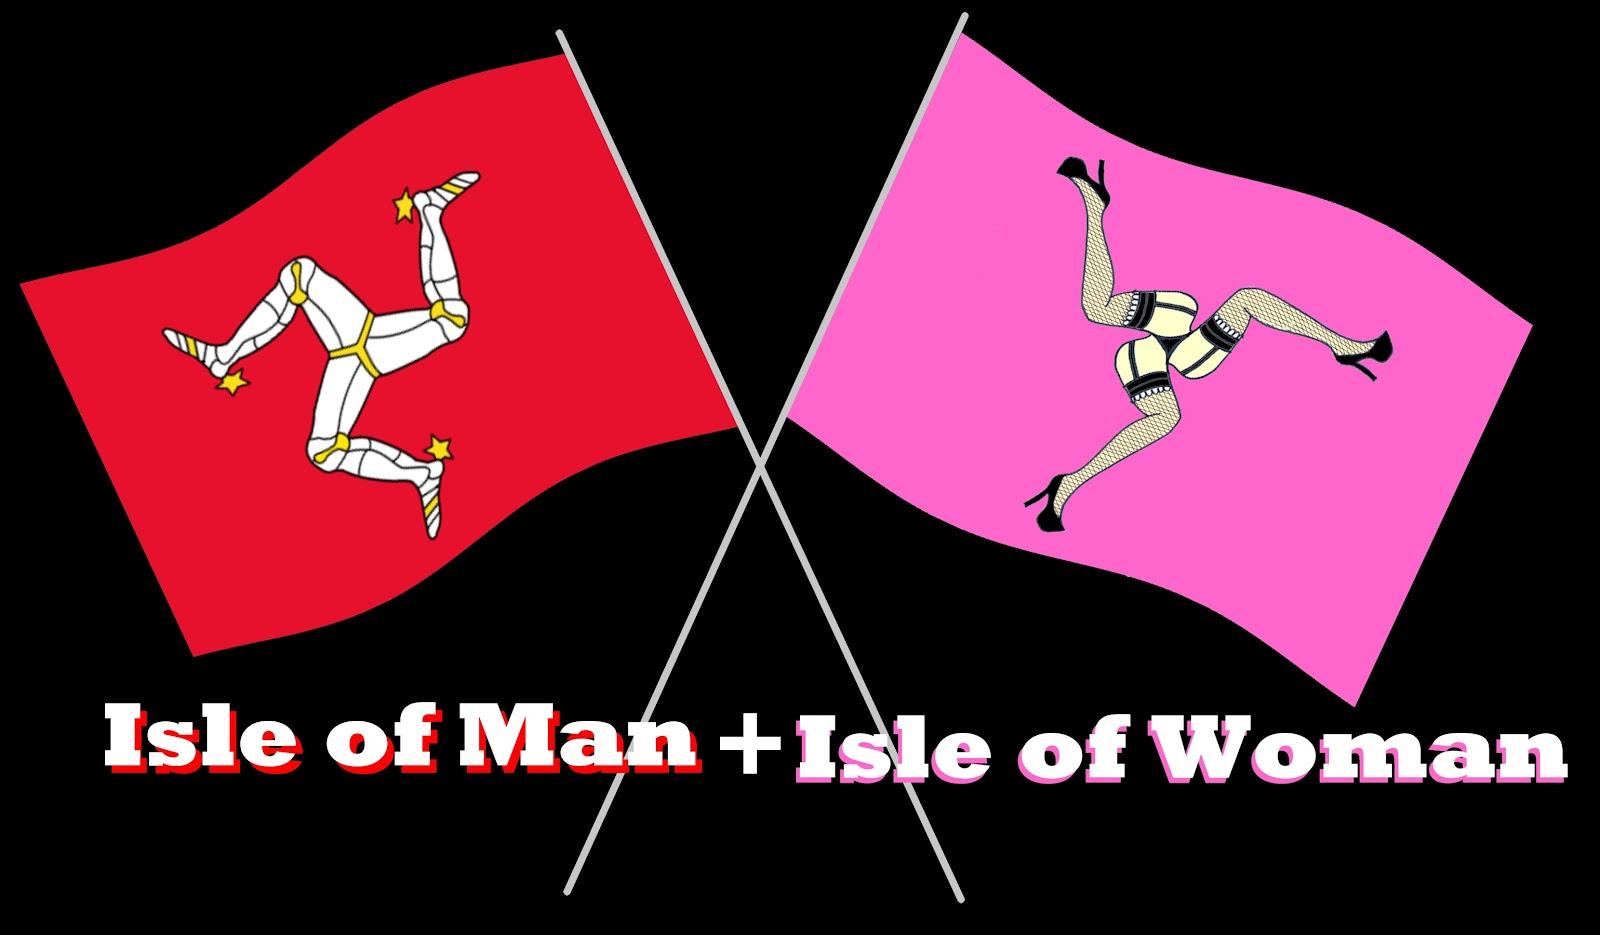 Isle of man women